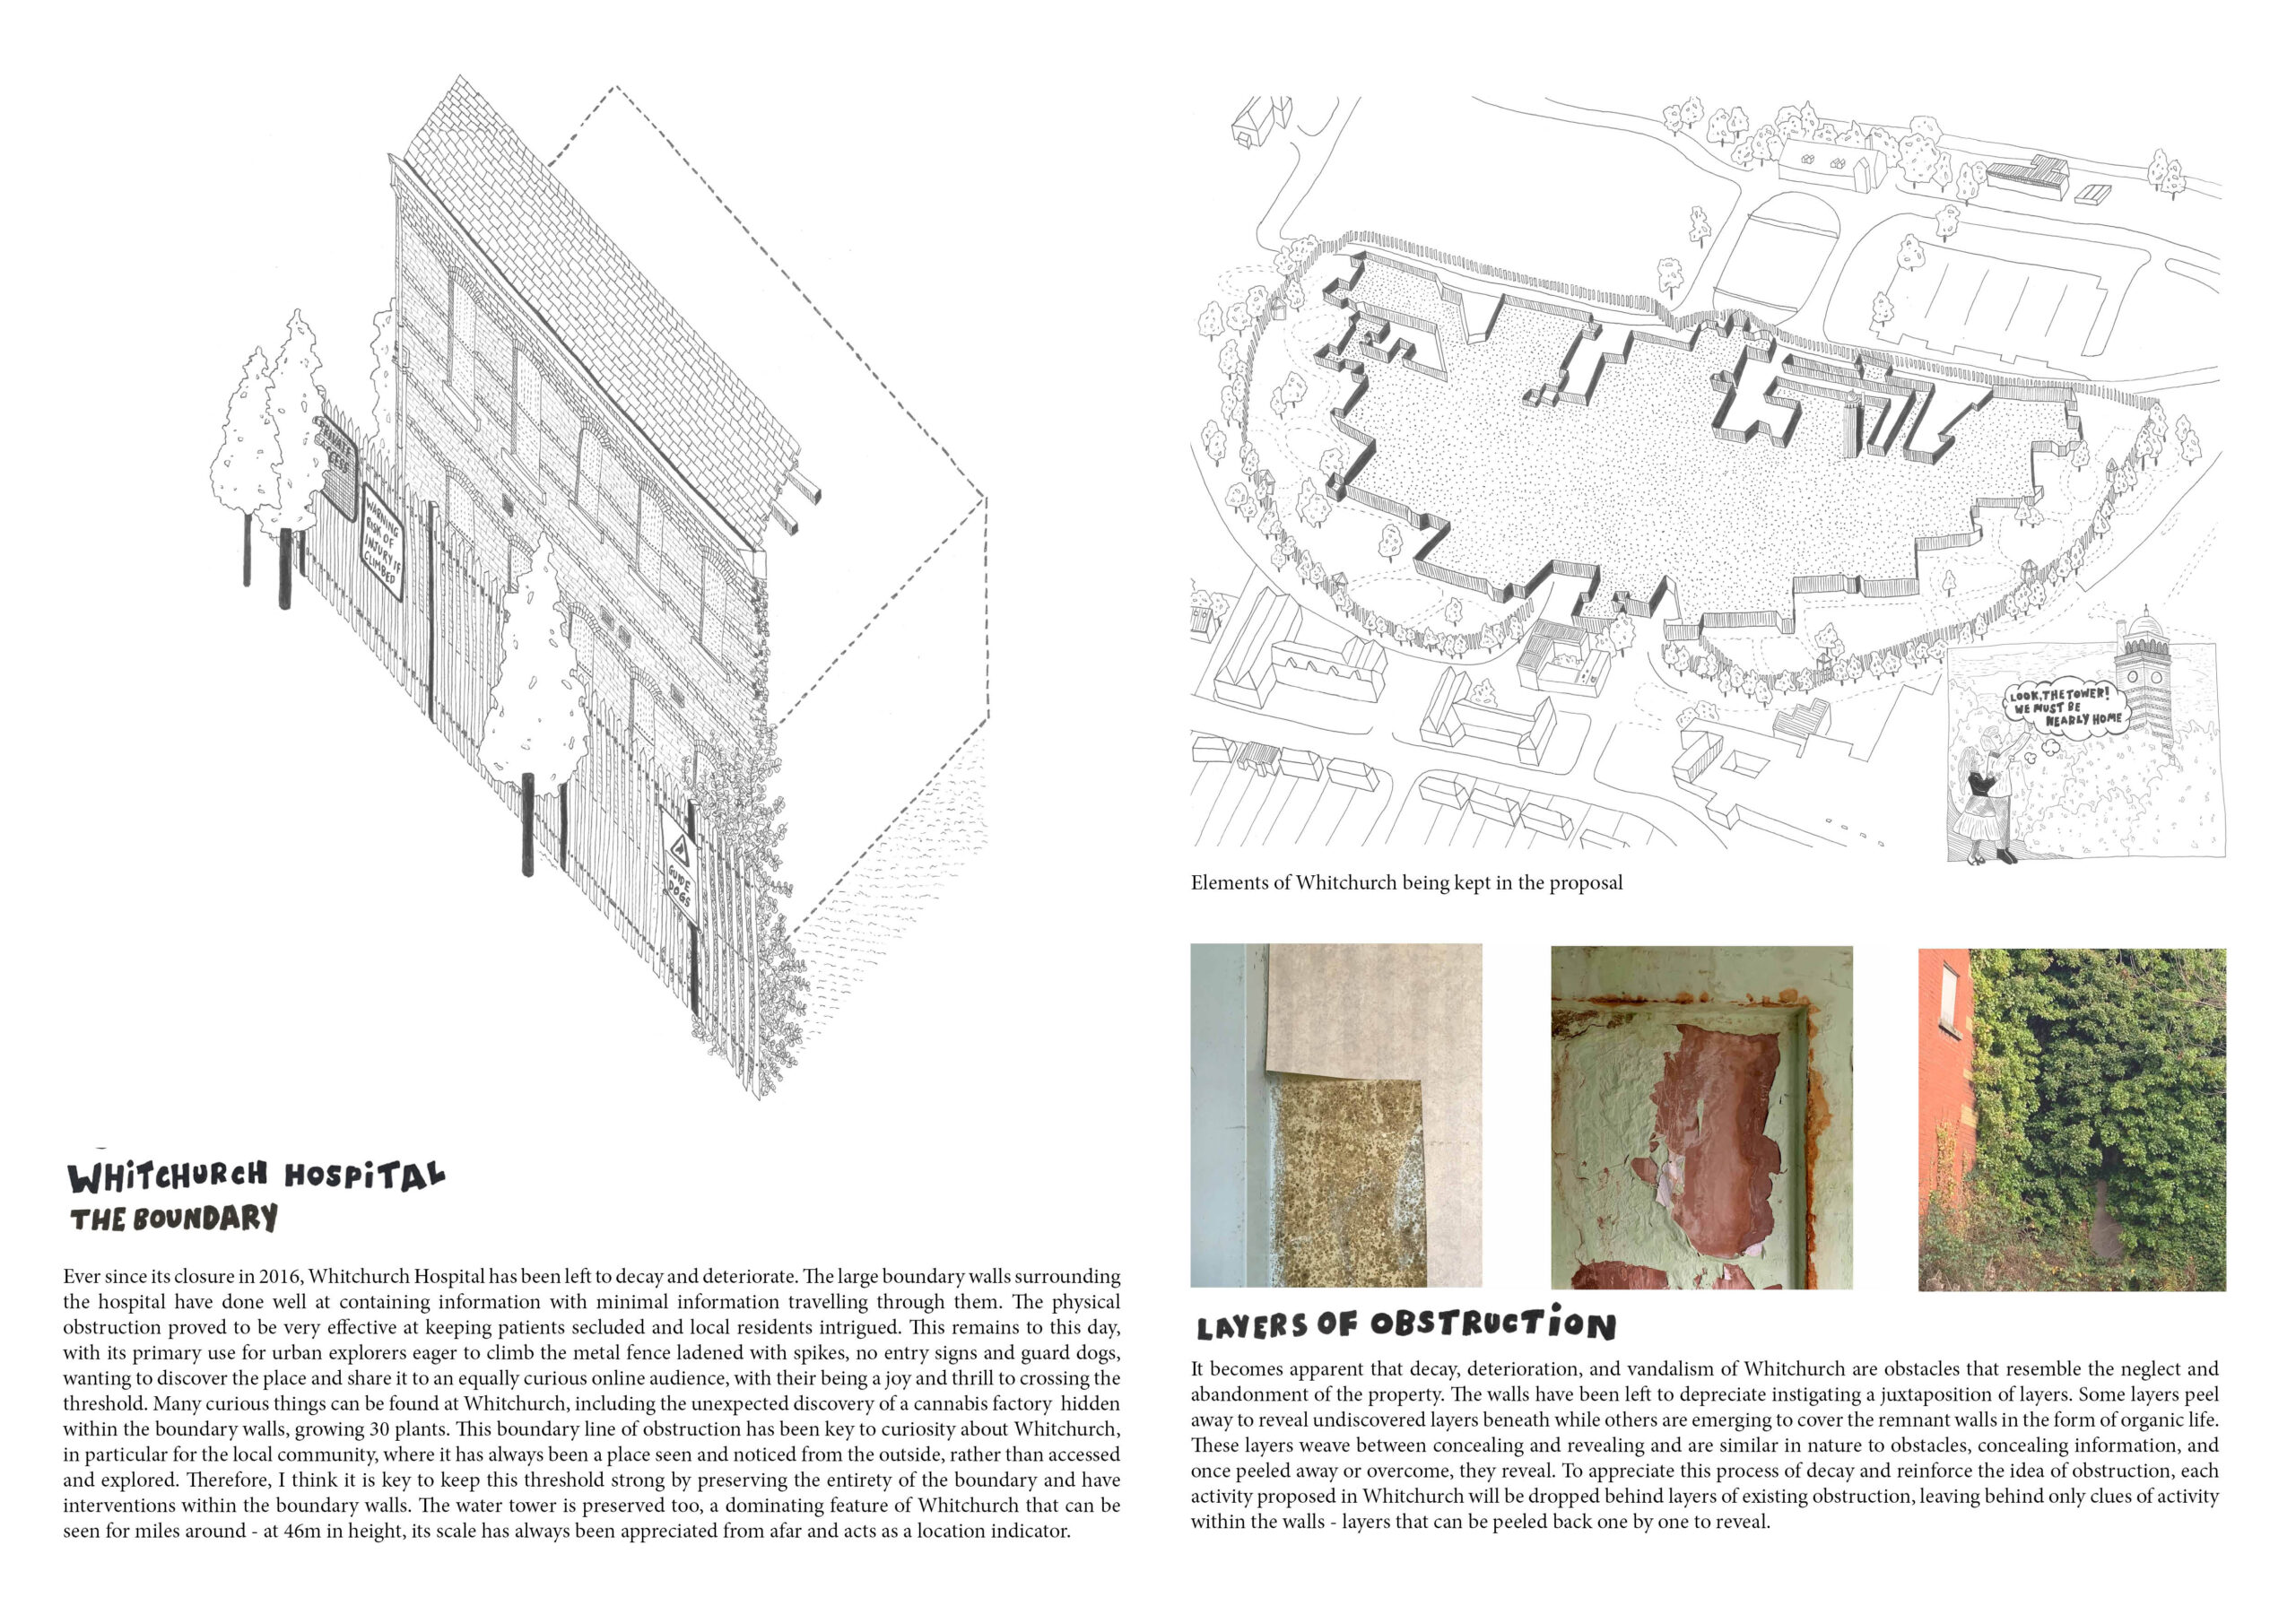 Portfolio Page of the Boundary Wall and Decay of the interior, layers oscillating between concealing and revealing forms.